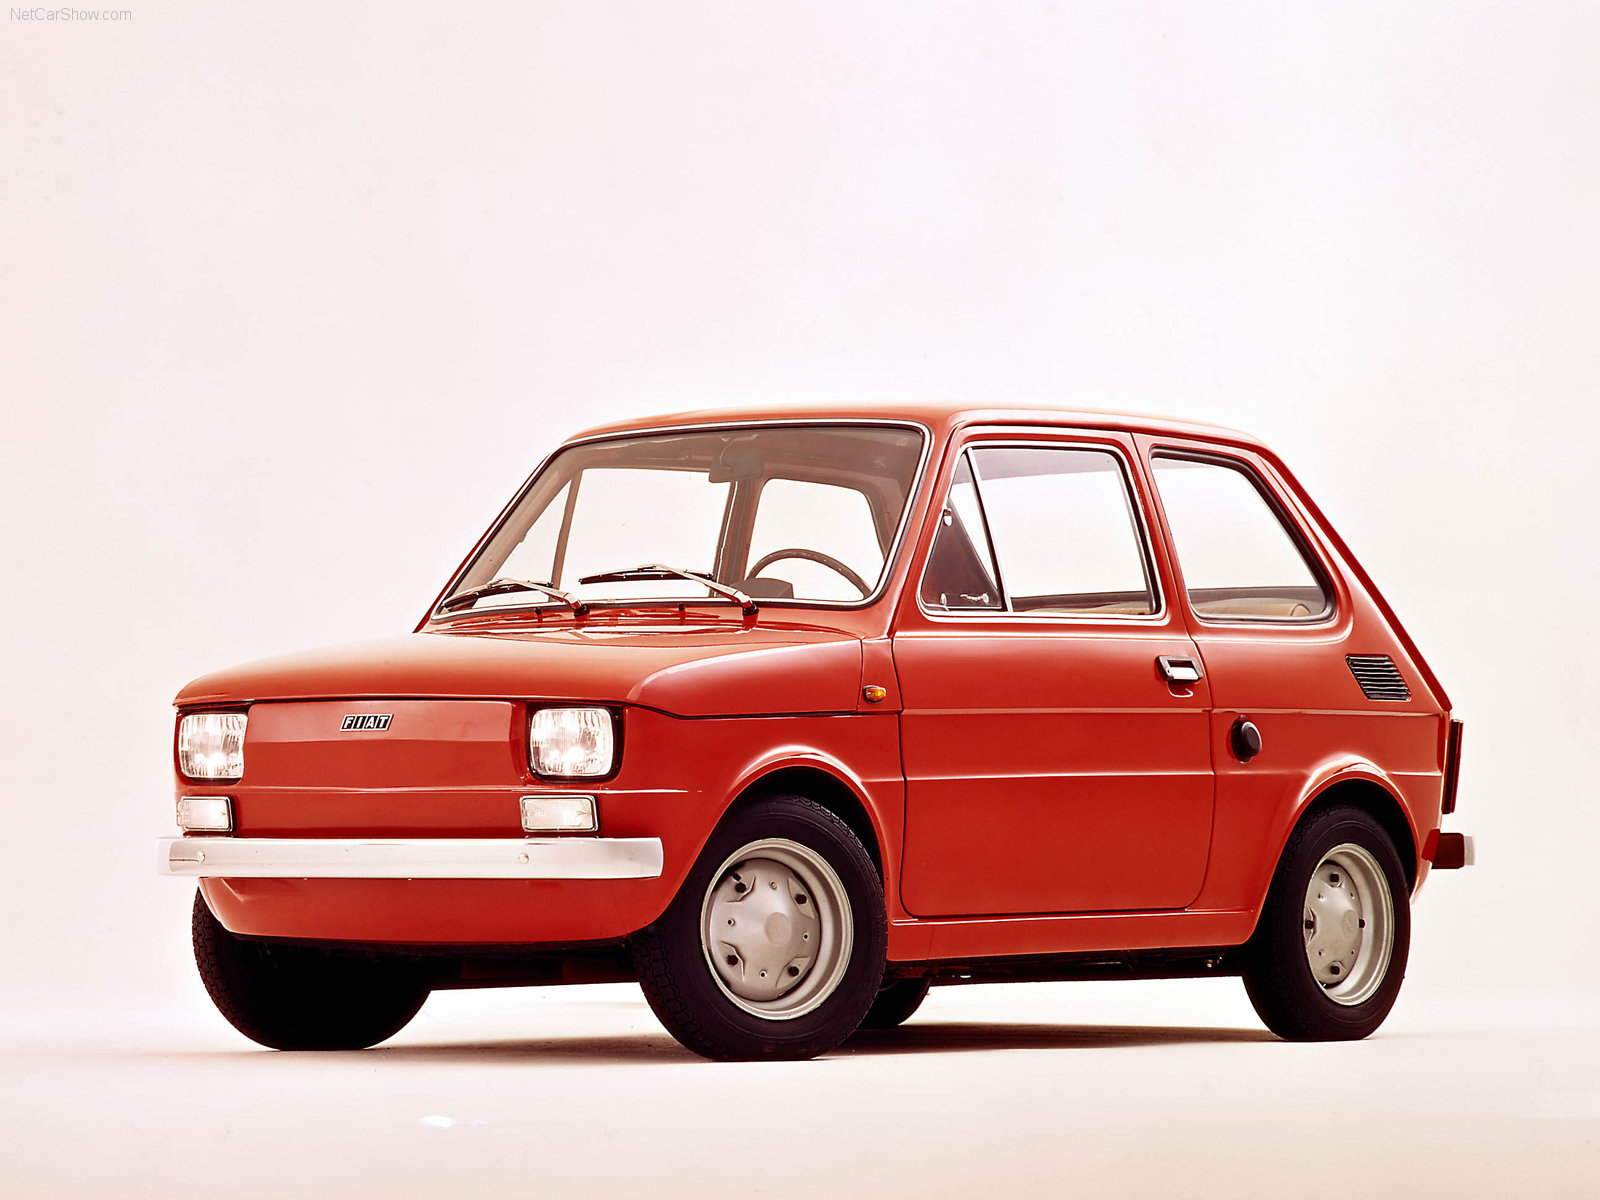 1000+ images about Cars / Made in Poland on Pinterest.